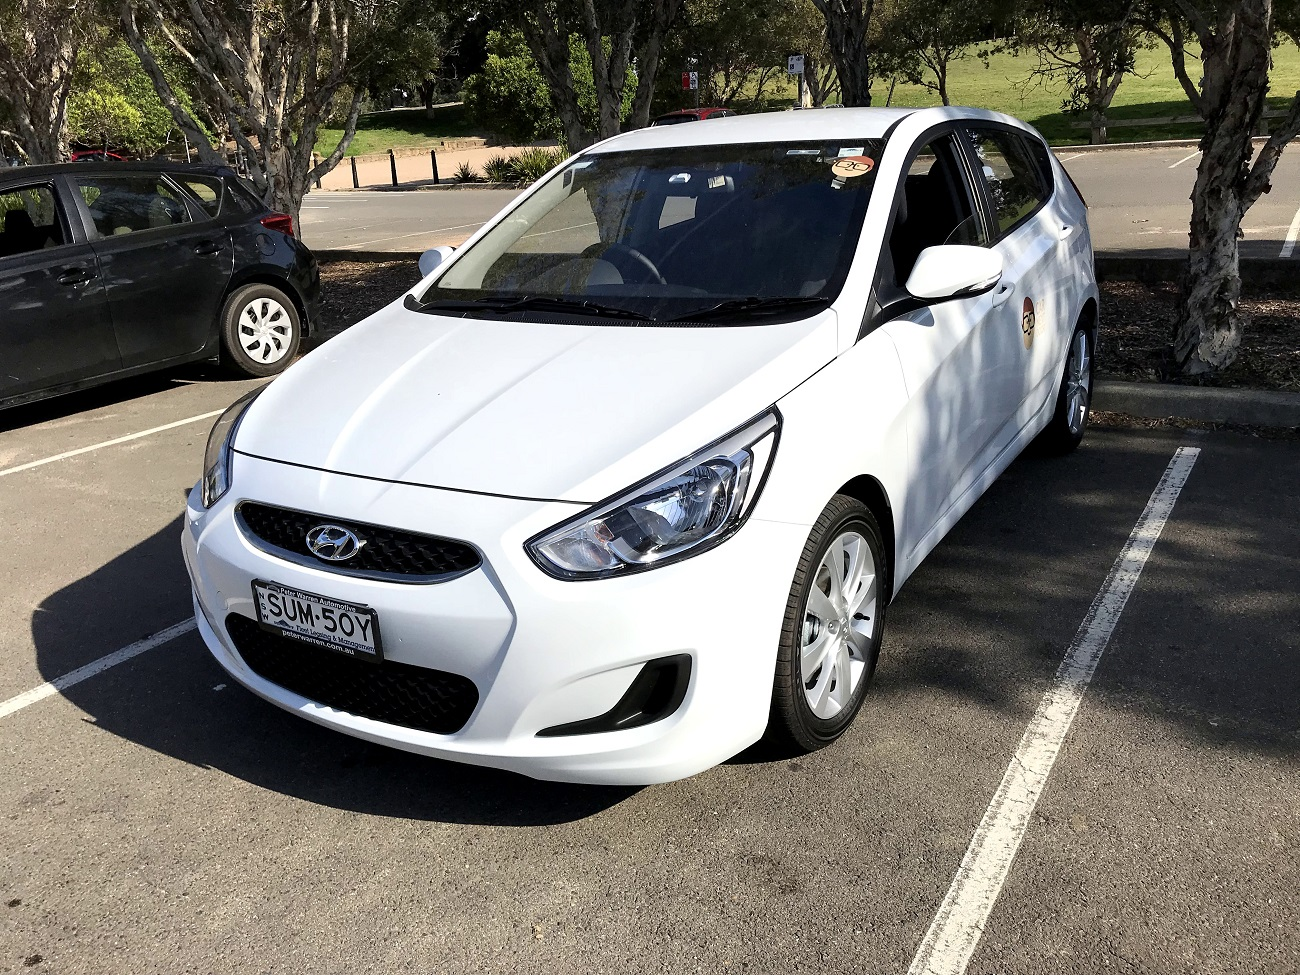 Picture of CarNextDoor's 2018 Hyundai Accent